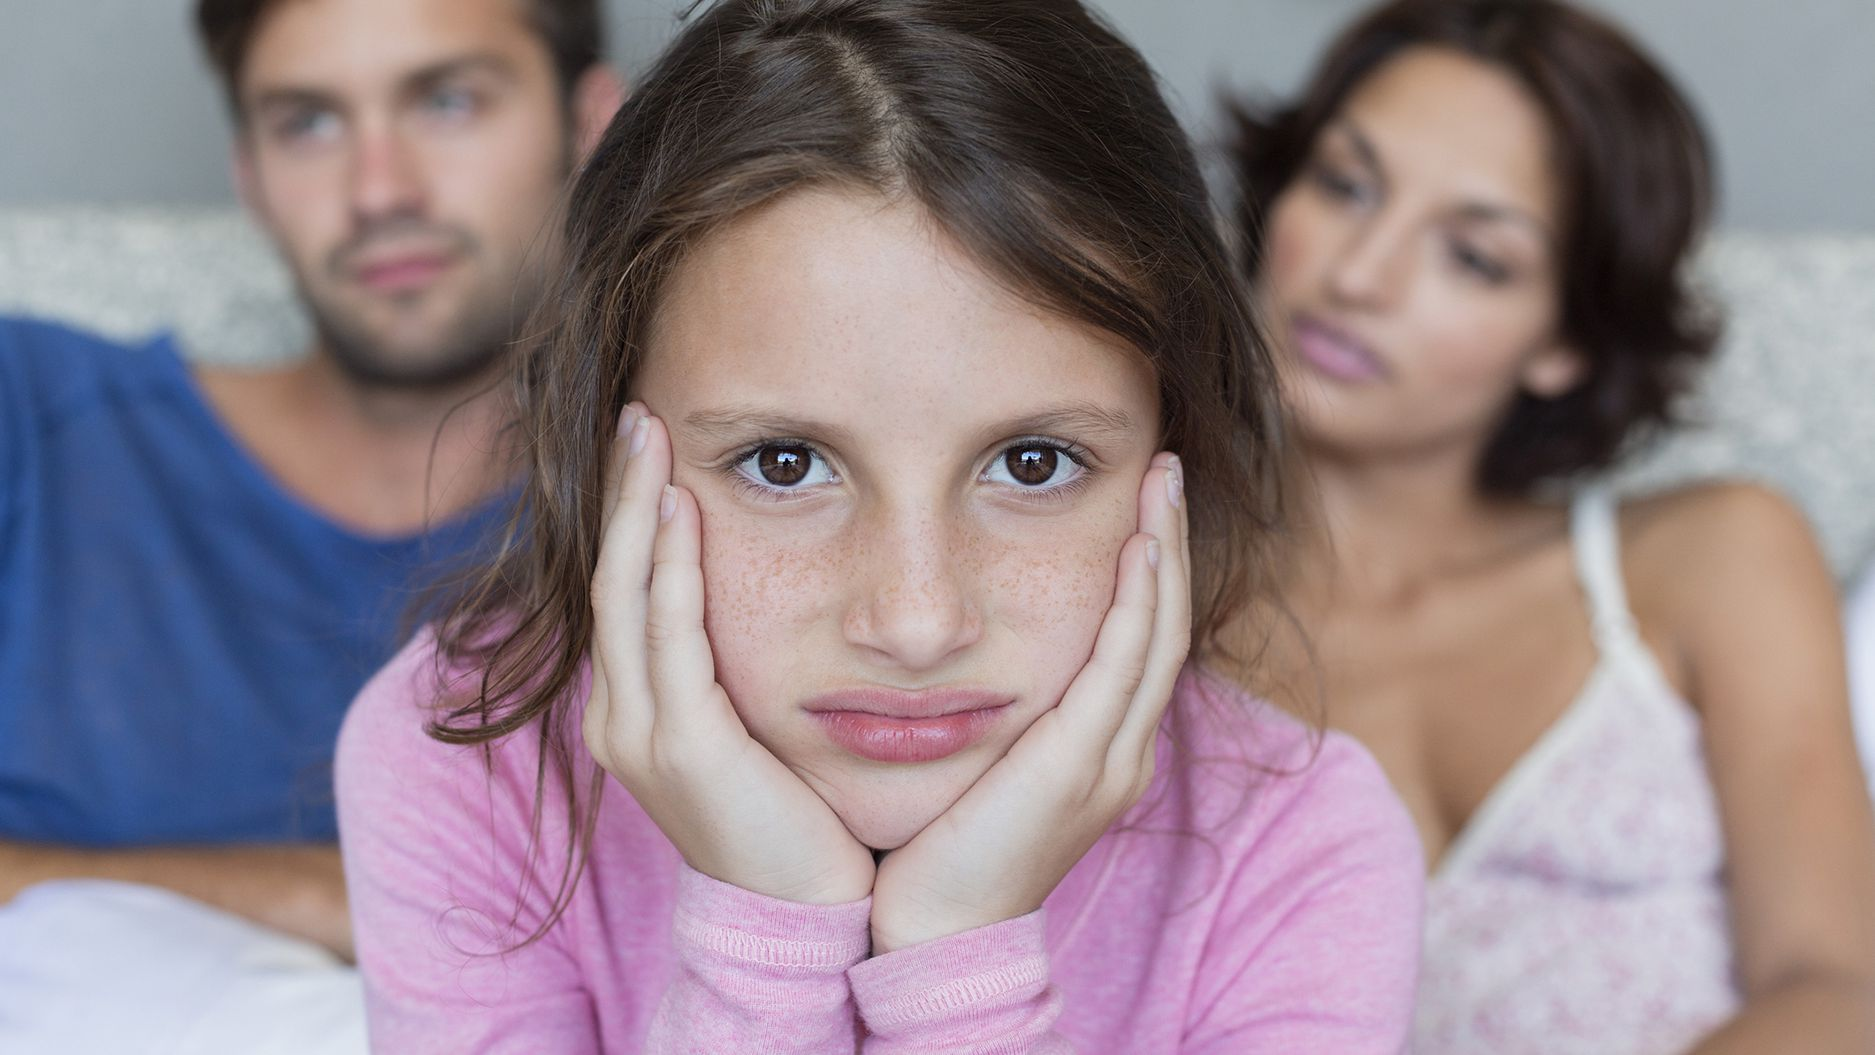 How to Remove a Child From Family Sharing